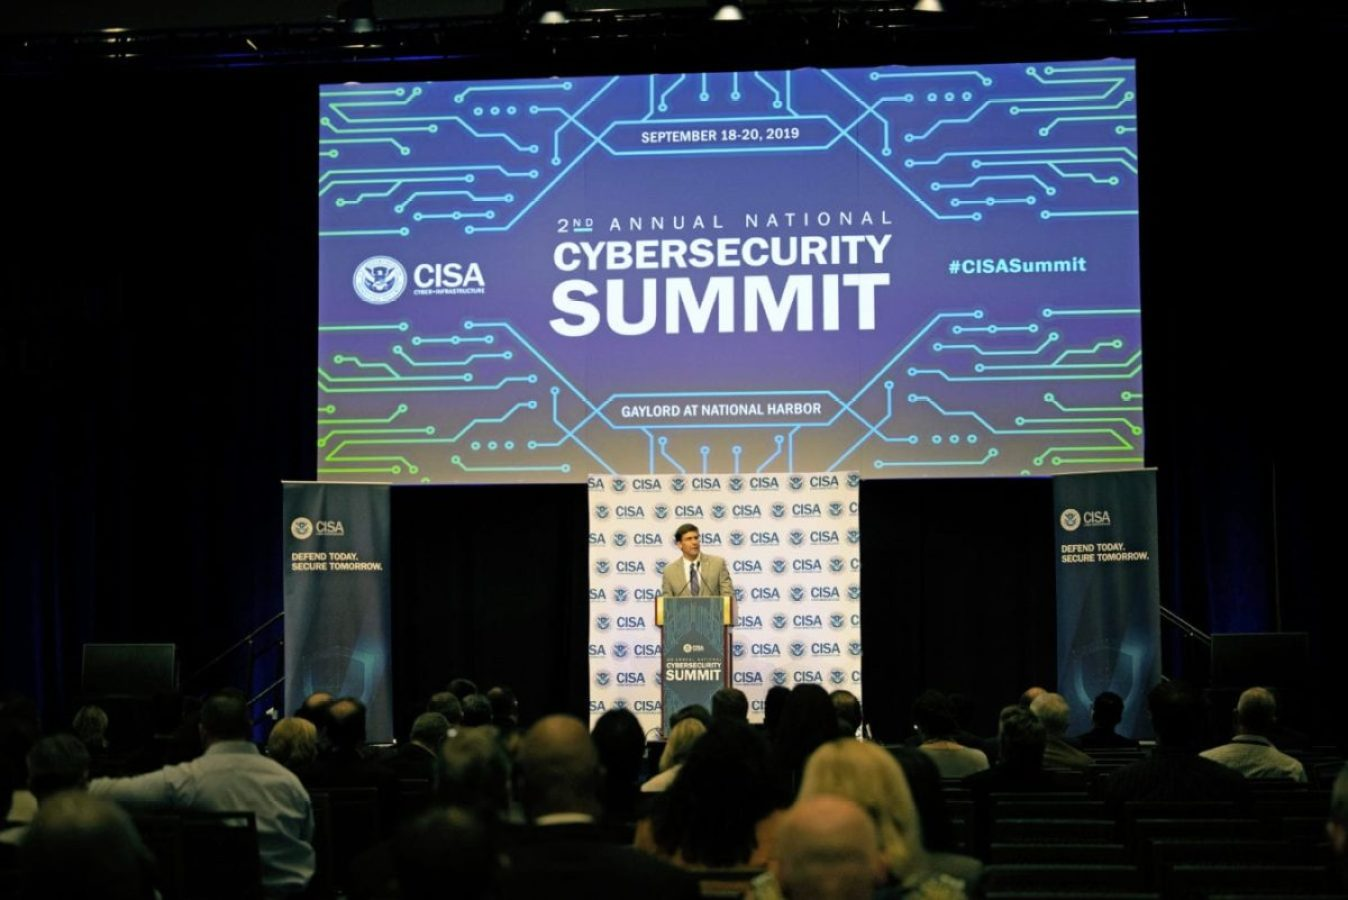 U.S. Secretary of Defense Dr. Mark T. Esper delivers remarks at the Department of Homeland Security (DHS) Cybersecurity and Infrastructure Security Agency's second annual national cybersecurity summit, National Harbor, Maryland, Sept. 19, 2019. As a part of DHS, the Coast Guard is subject to DHS efforts to upgrade and improve the security of IT infrastructure.